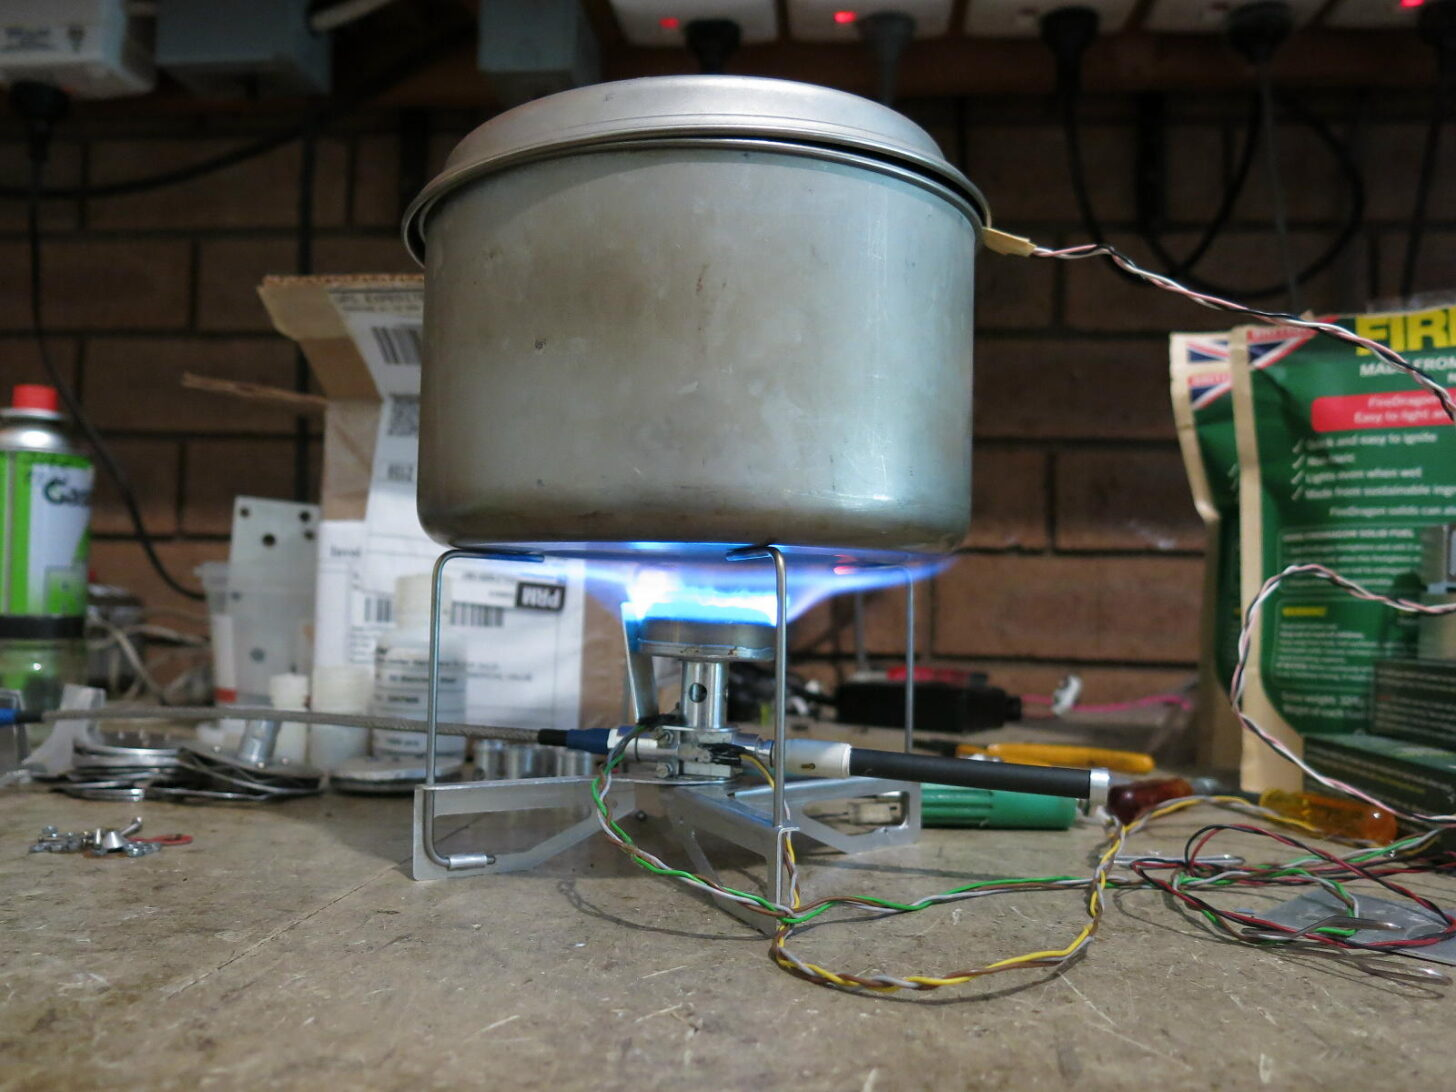 a lit stove and pot in a workshop